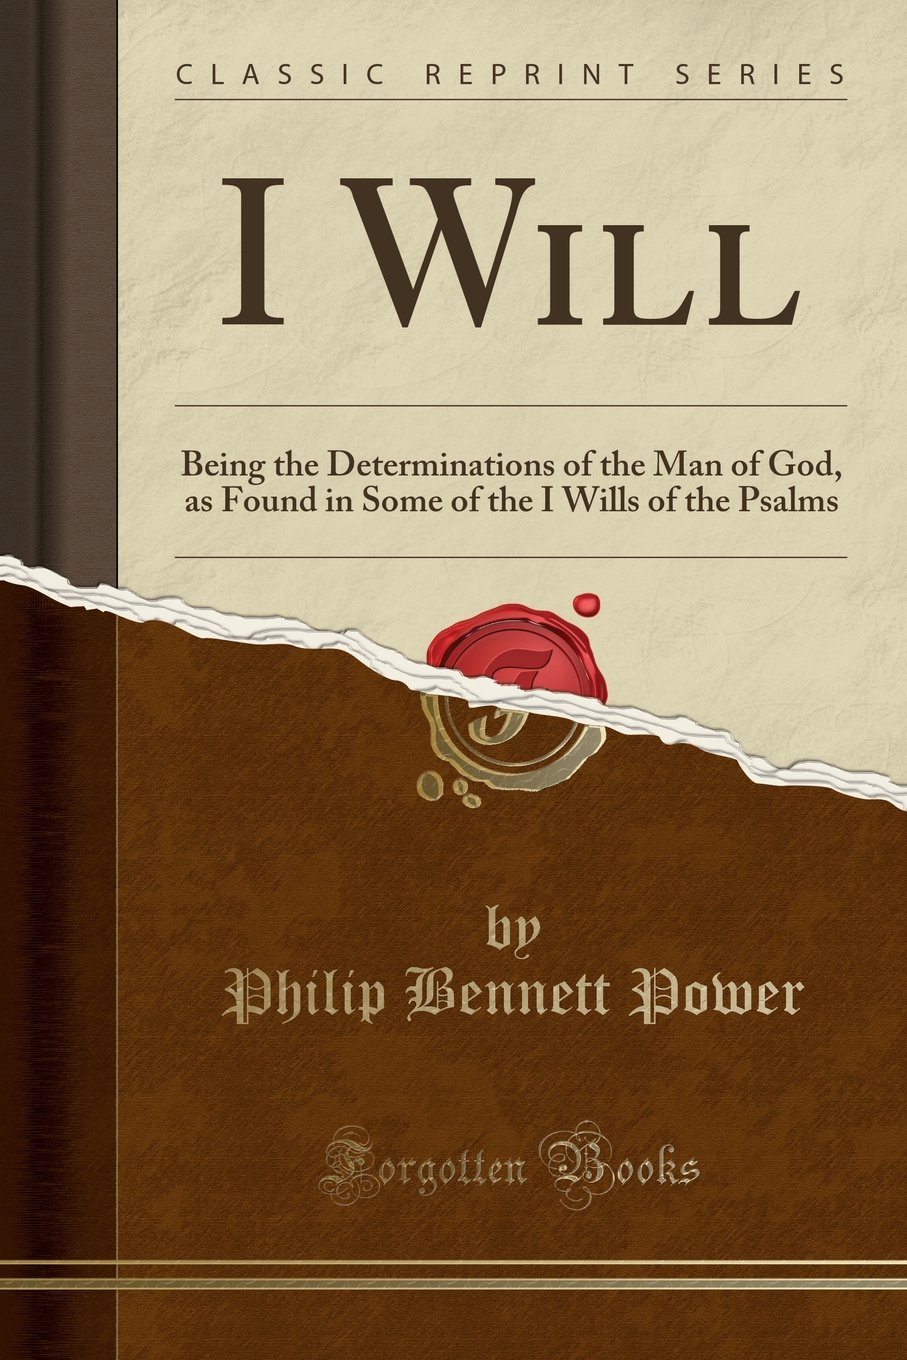 I Will: Being the Determinations of the Man of God, as Found in Some of the I Wills of the Psalms (Classic Reprint) ebook